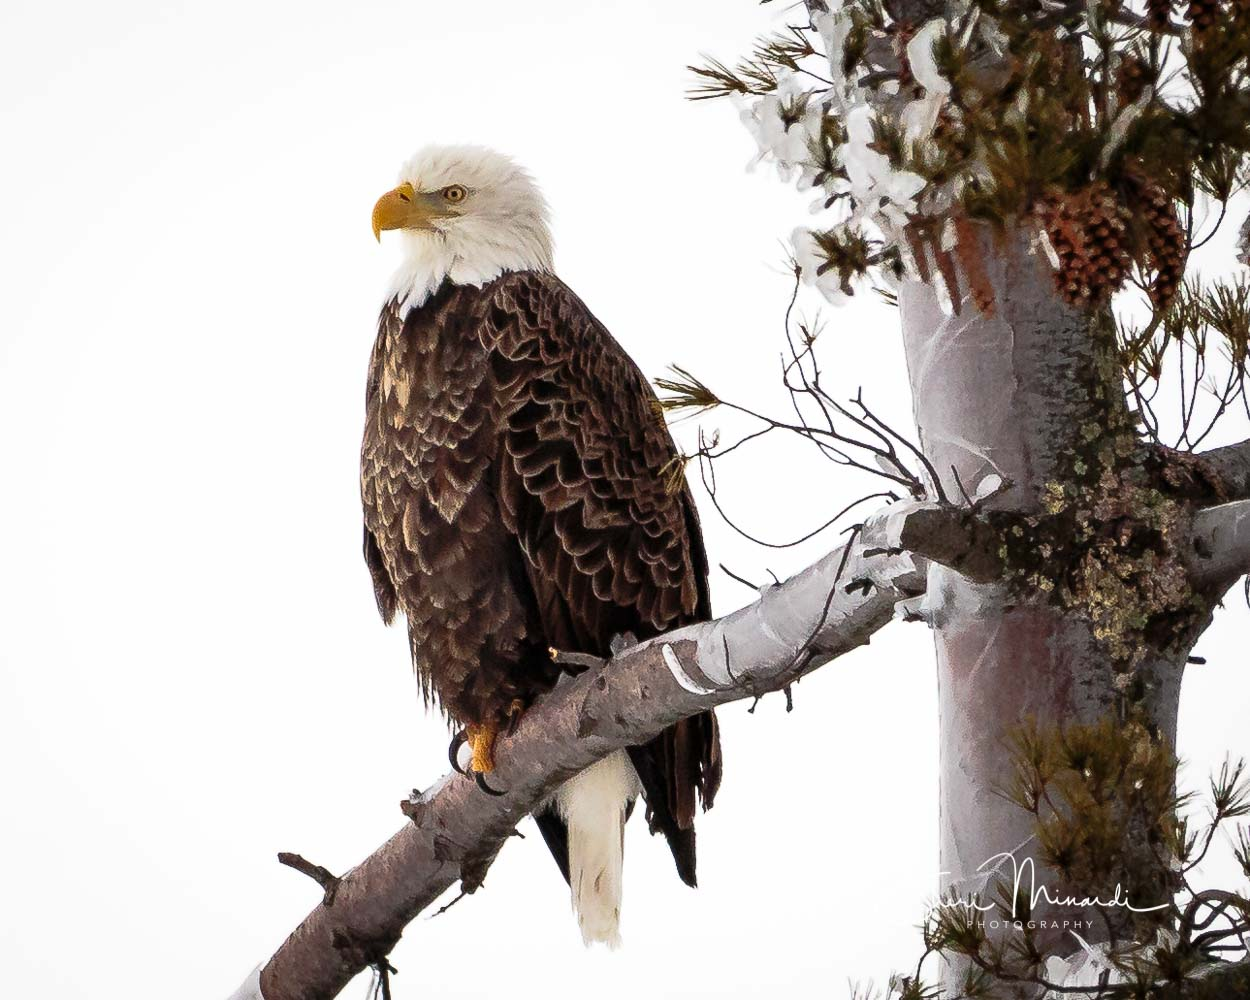 Bald Eagle on Iced Tree February 10, 201